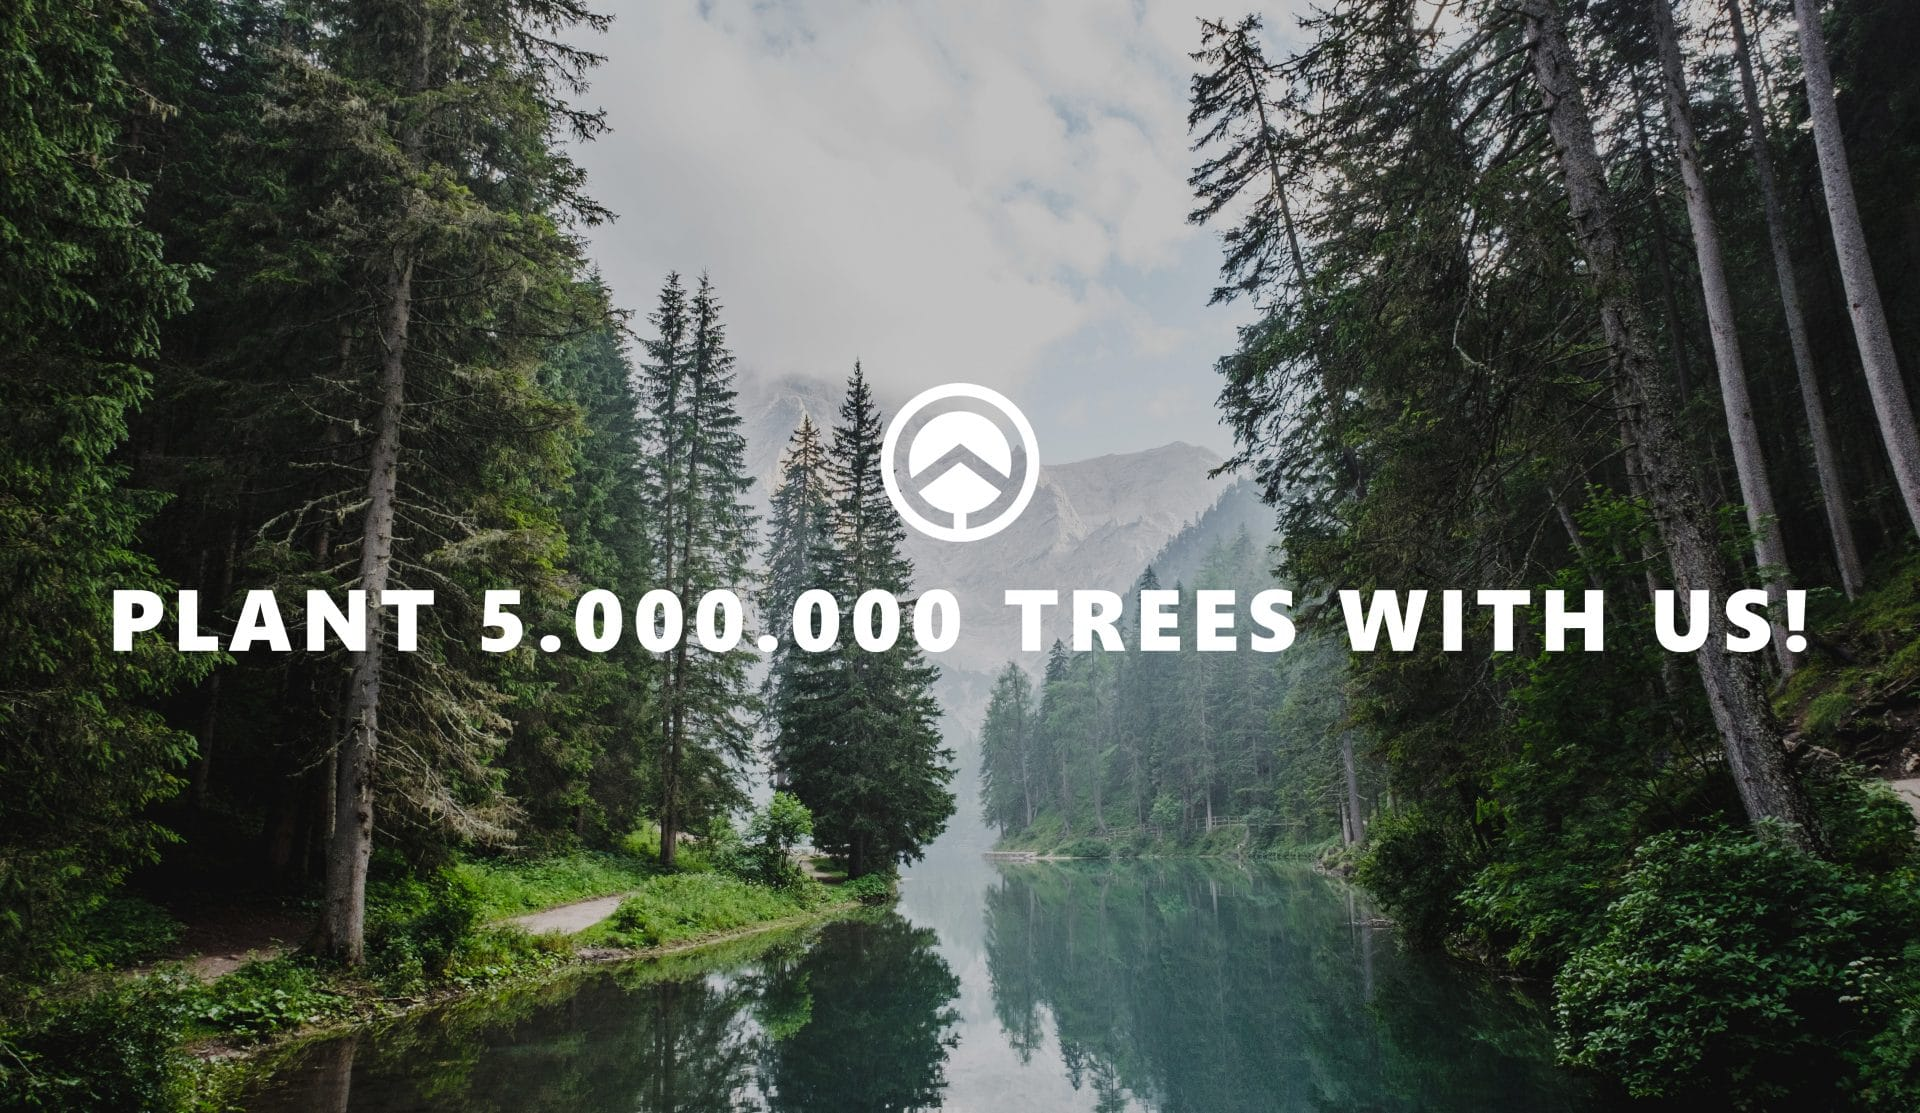 Plant 5000000 trees with us